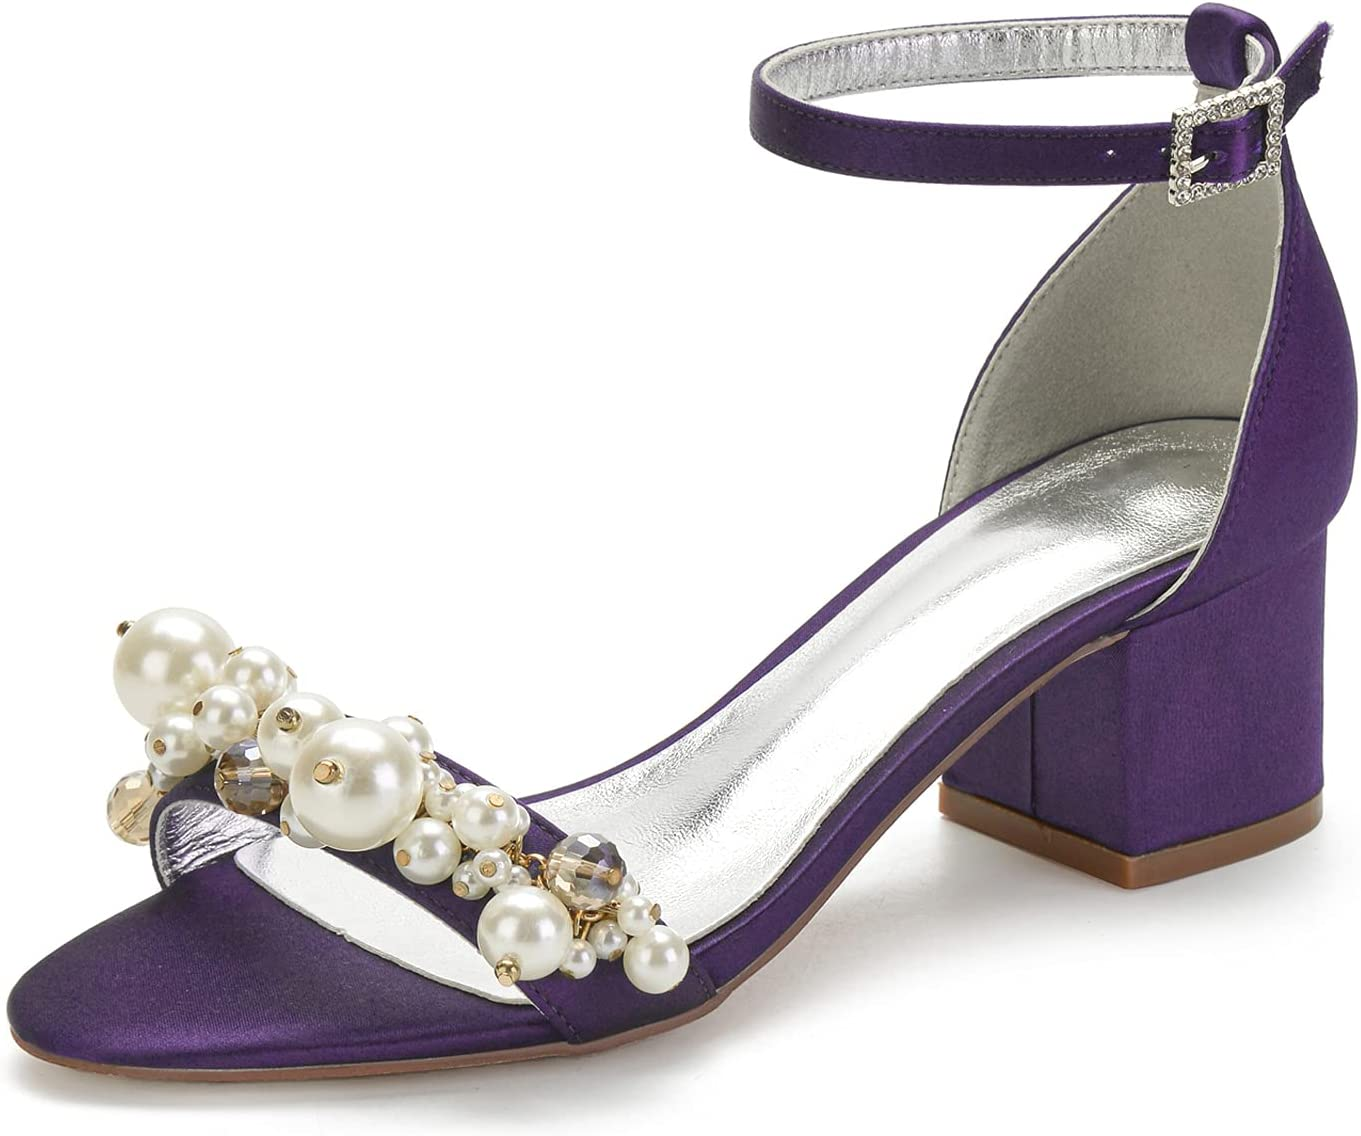 Max 58% OFF Women Satin Wedding Sandals for Bride Ankle Strap High material Heel Low Block